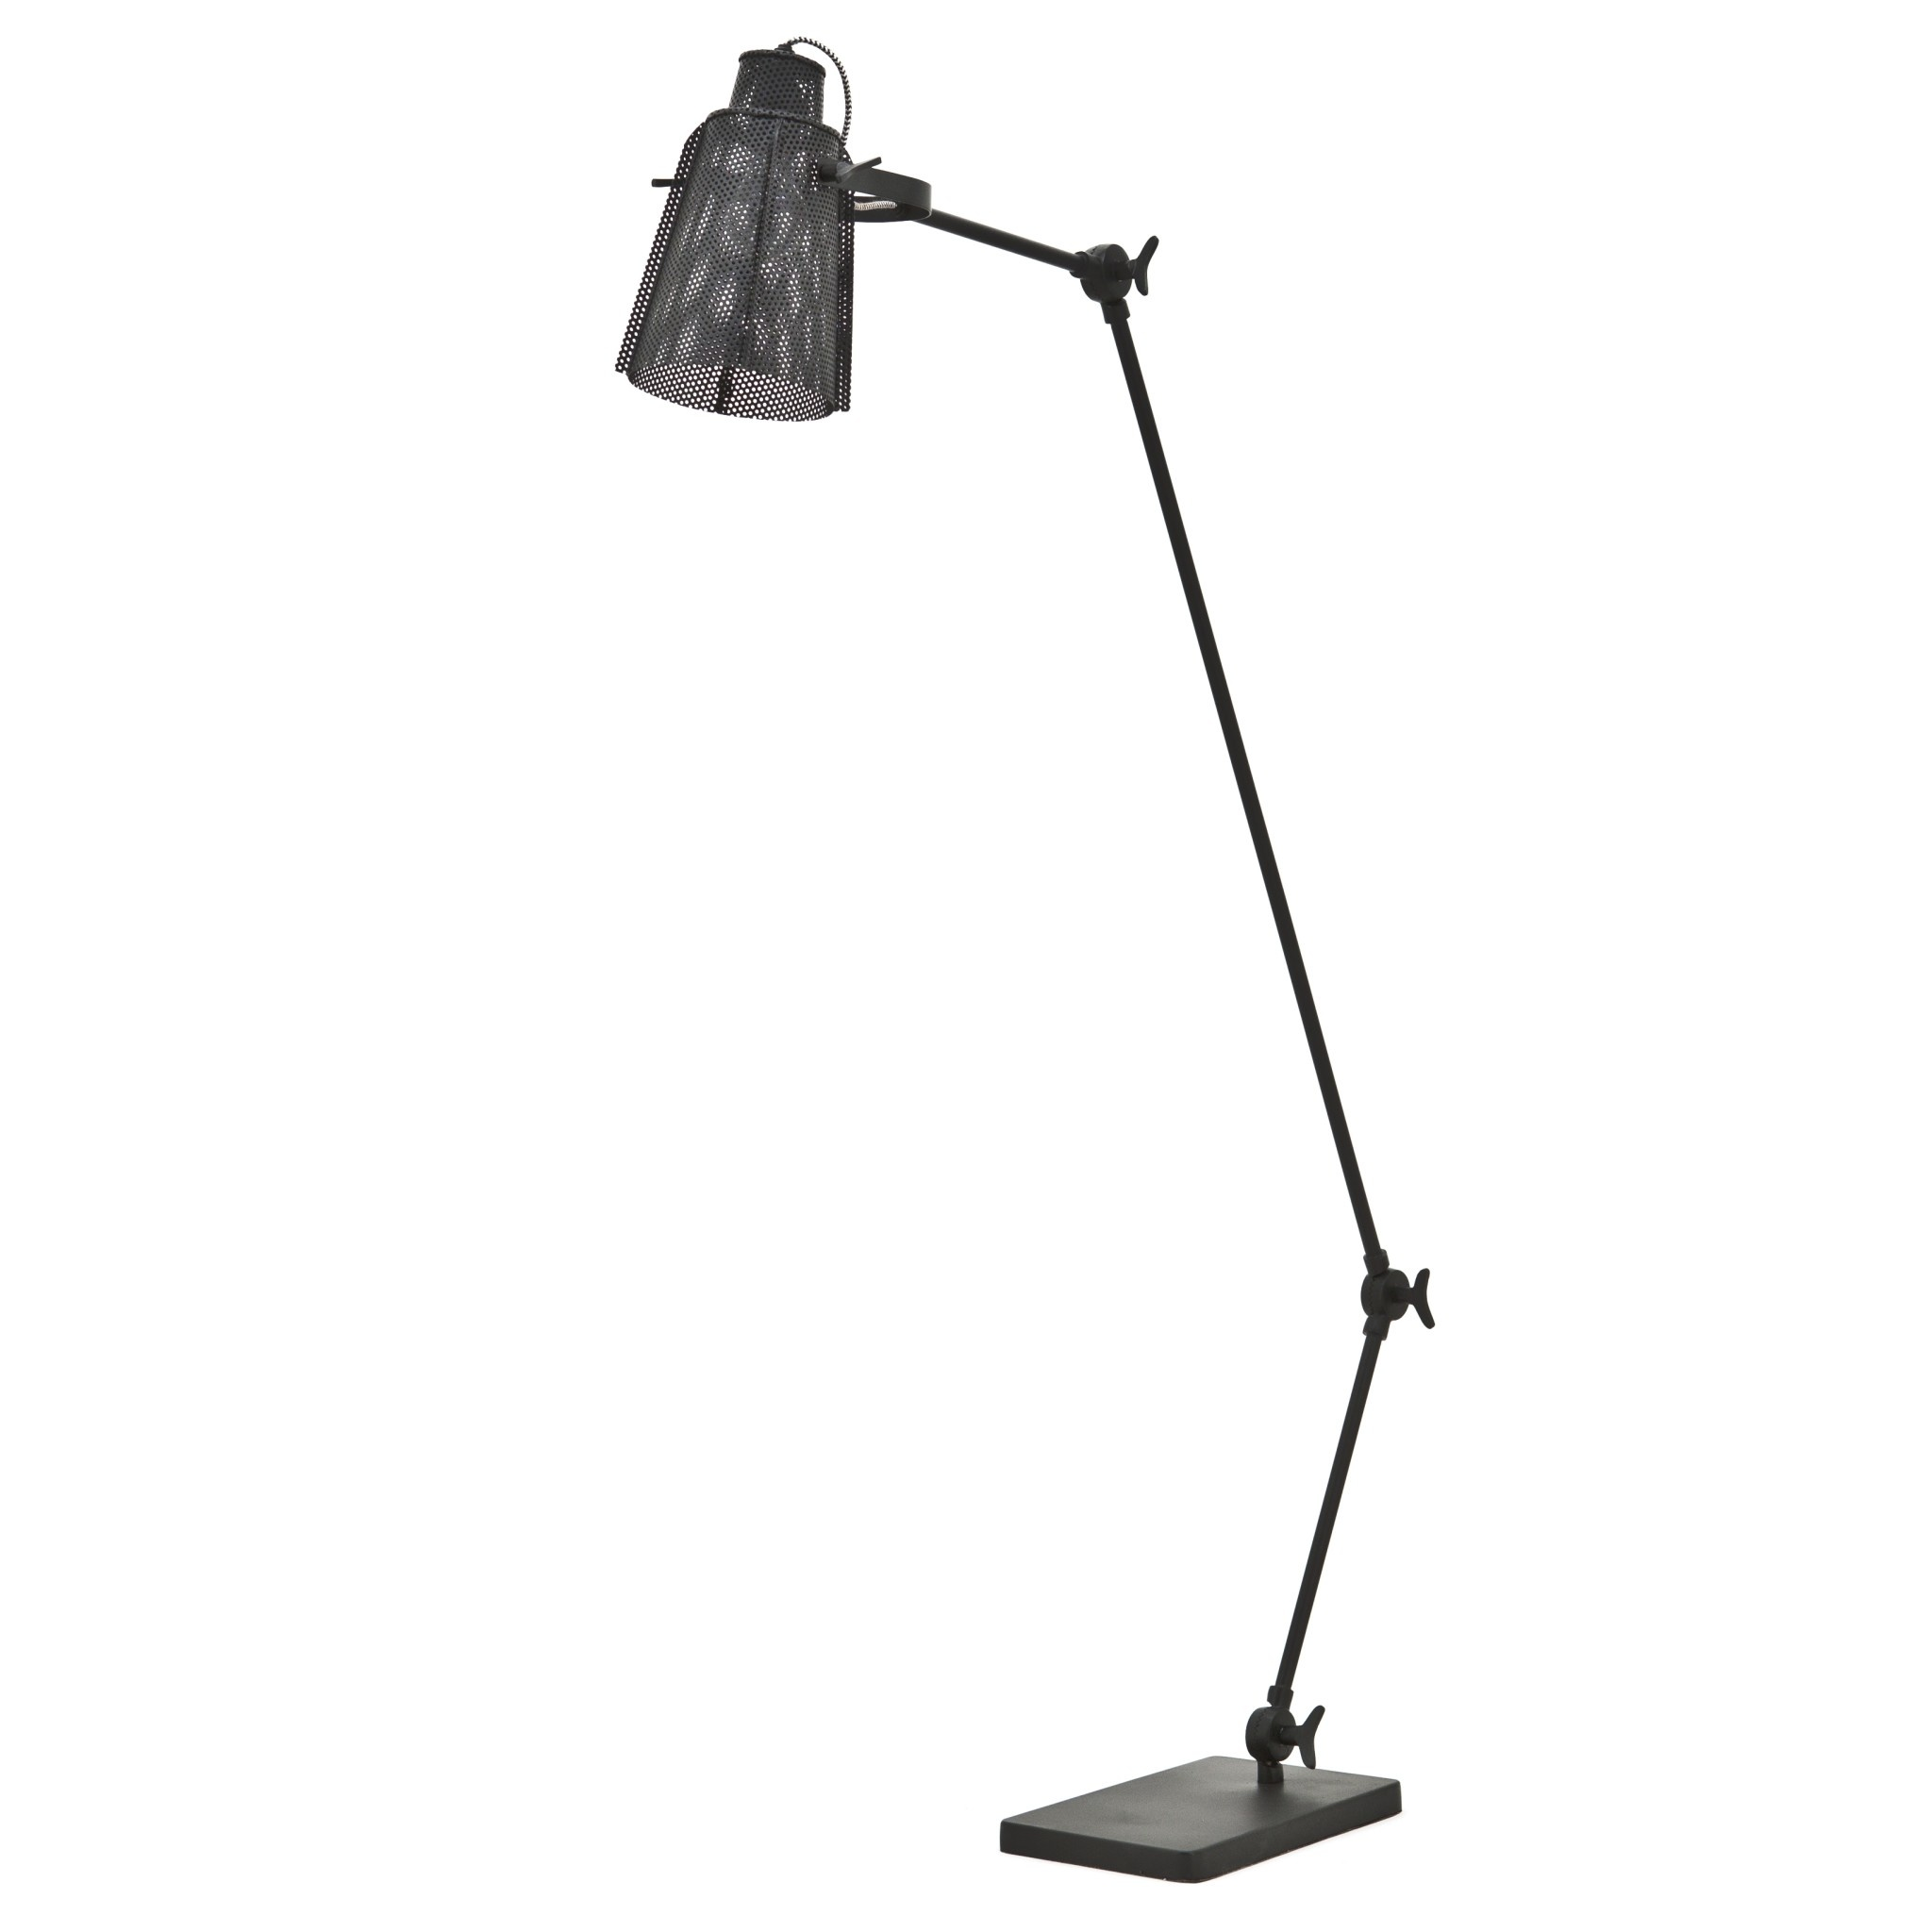 By-Boo By-Boo Vloerlamp Apollo